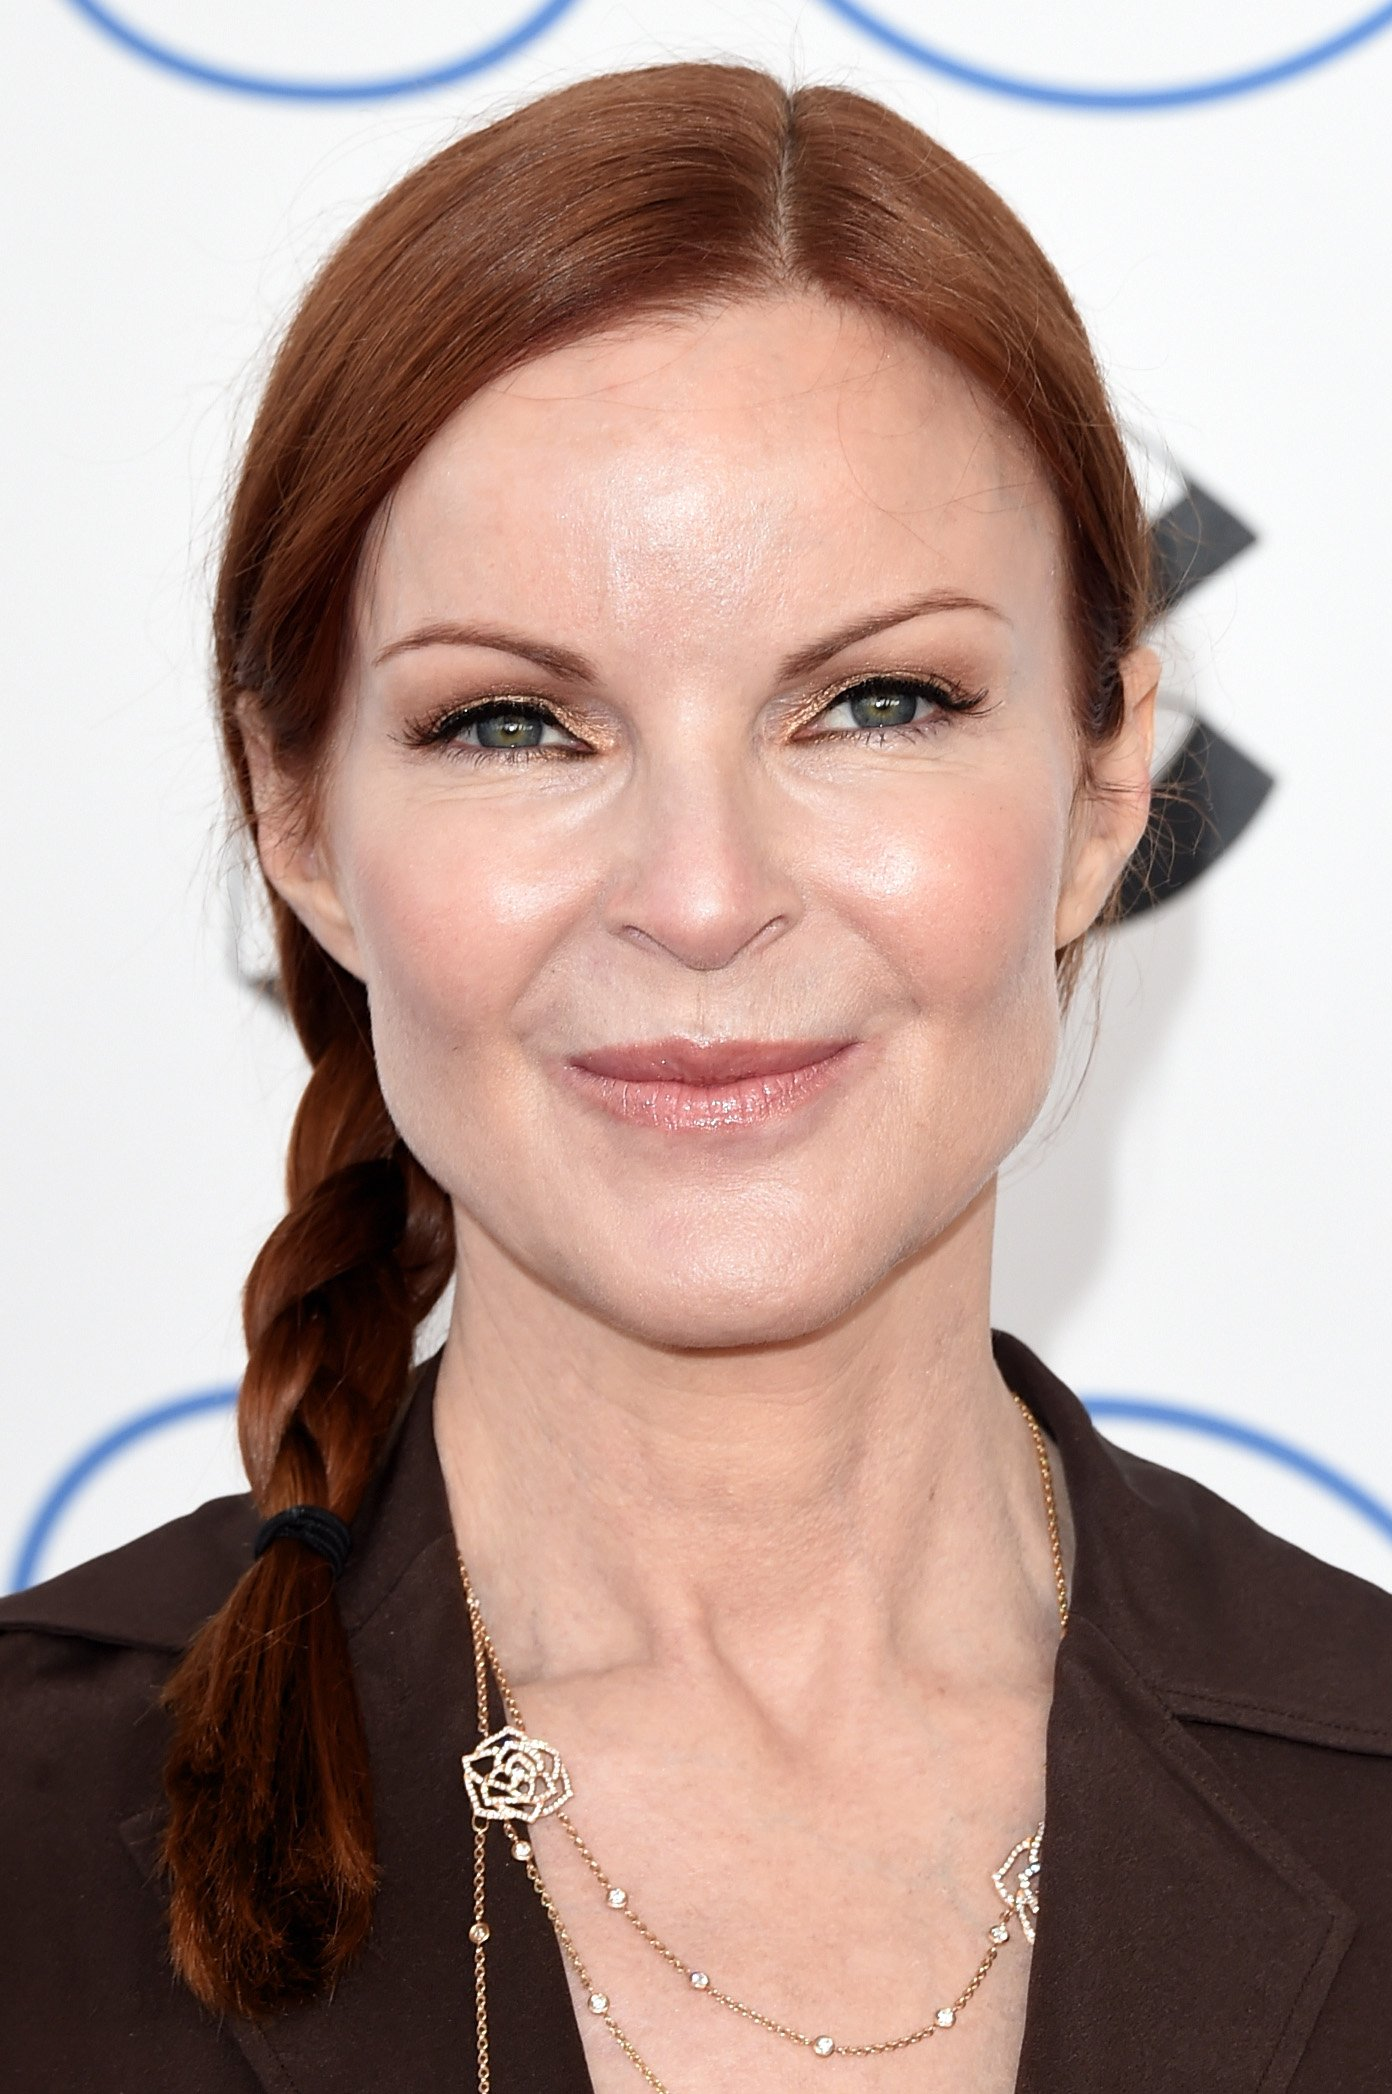 Marcia Cross attends the 2015 Film Independent Spirit Awards at Santa Monica Beach on February 21, 2015, in Santa Monica, California. | Source: Getty Images.